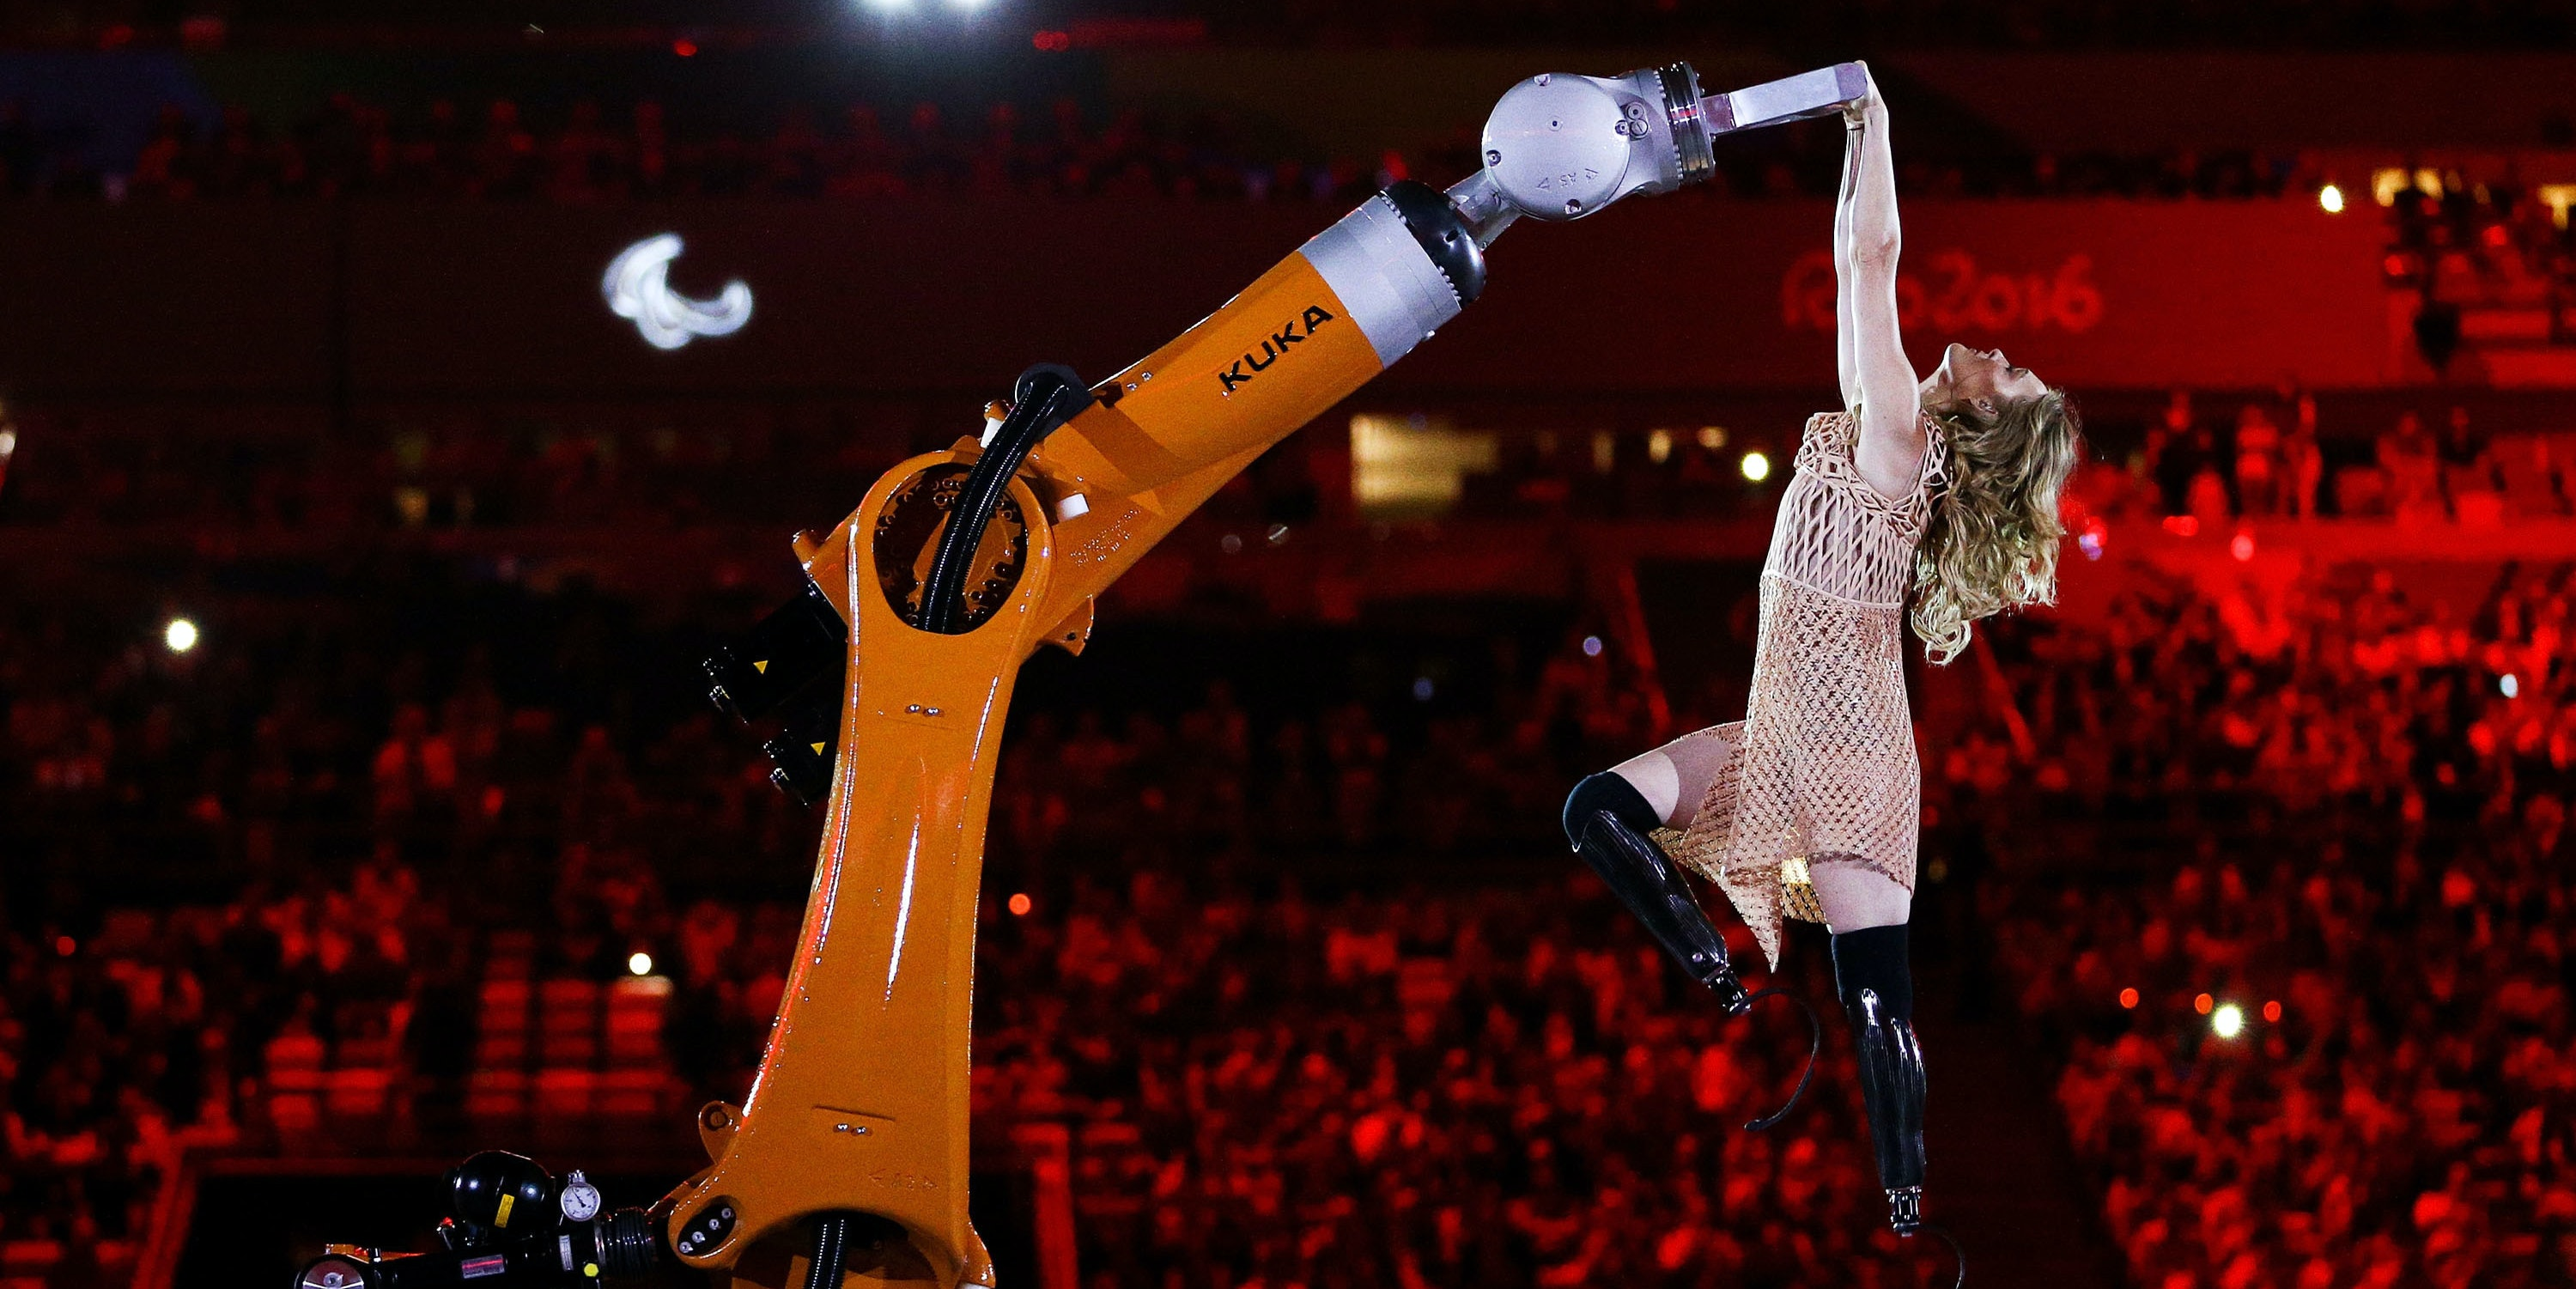 RIO DE JANEIRO, BRAZIL - SEPTEMBER 07:  Amy dances with robot Kuka during the Opening Ceremony of the Rio 2016 Paralympic Games at Maracana Stadium on September 7, 2016 in Rio de Janeiro, Brazil.  (Photo by Hagen Hopkins/Getty Images)